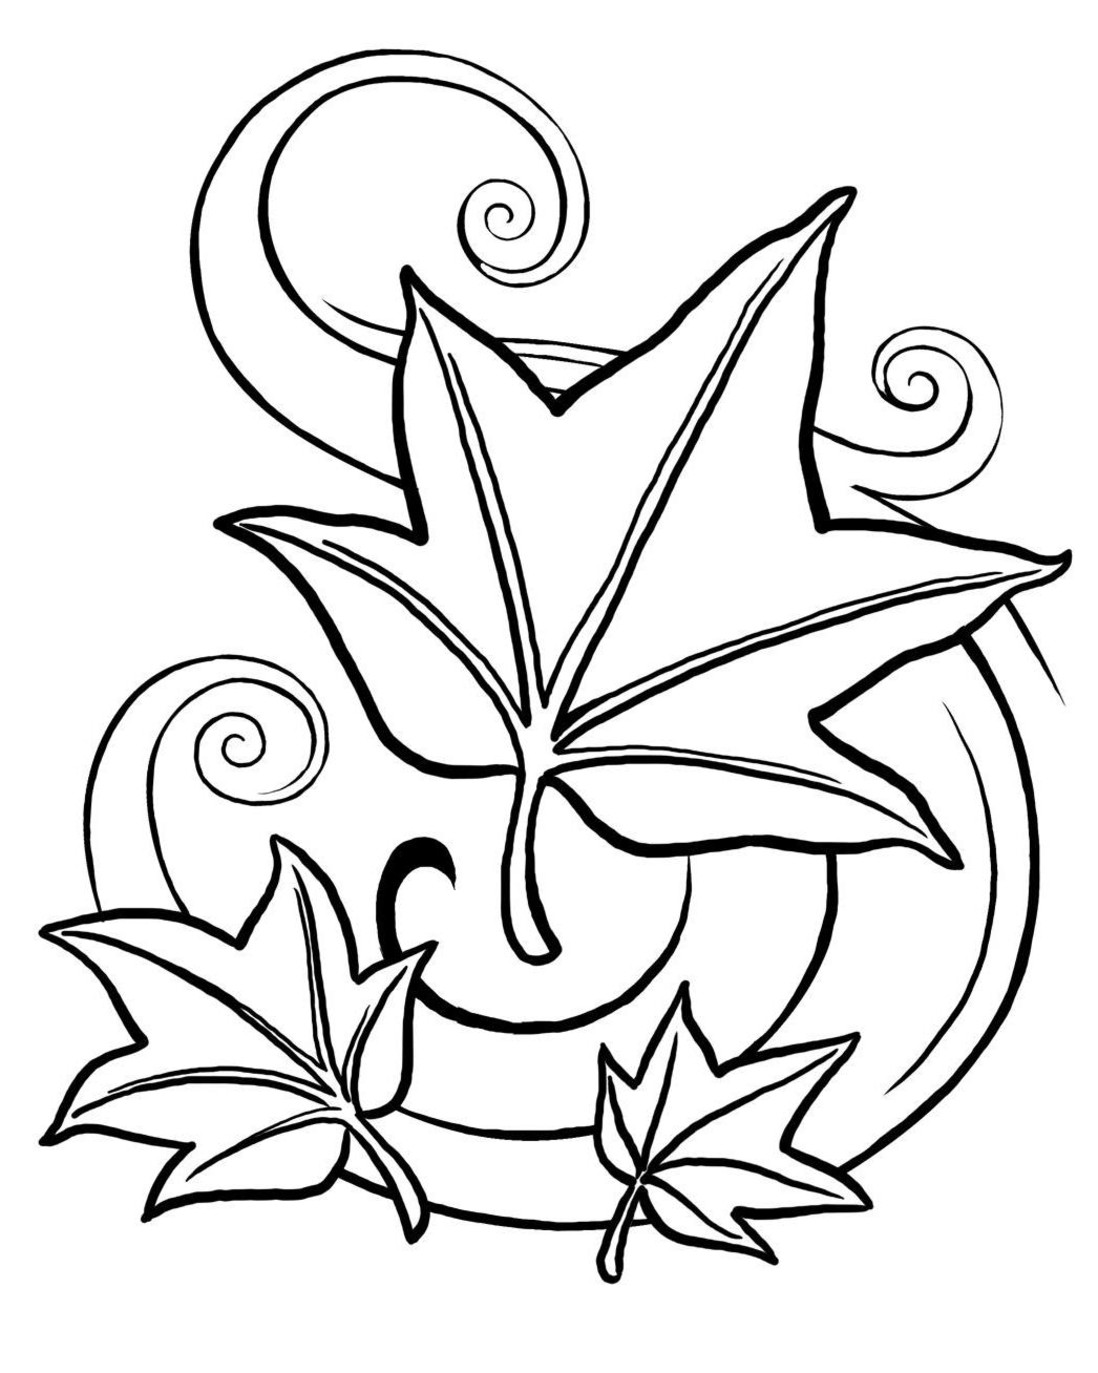 coloring pictures fall fall coloring sheets printable activity shelter pictures fall coloring